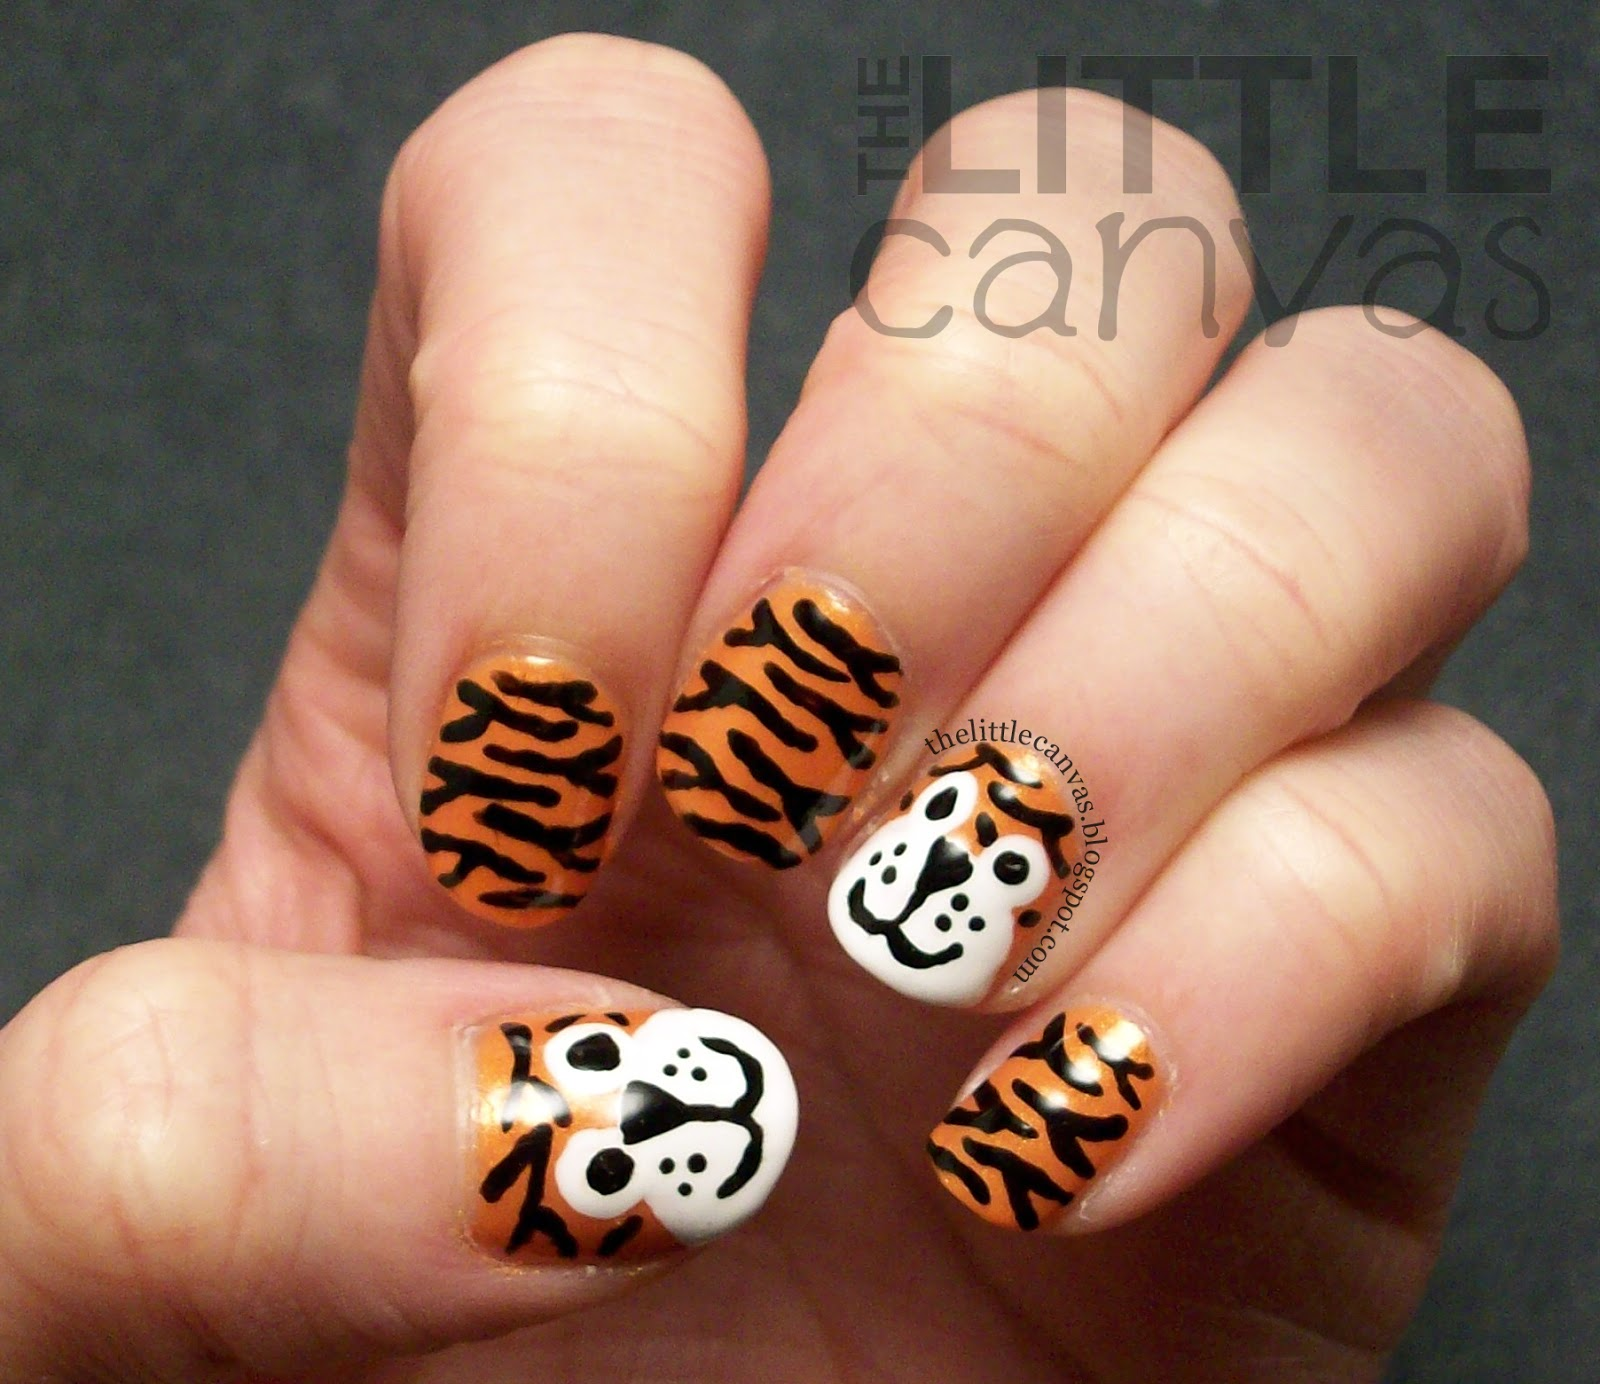 Tiger nail art re visited the little canvas tiger nail art re visited prinsesfo Images